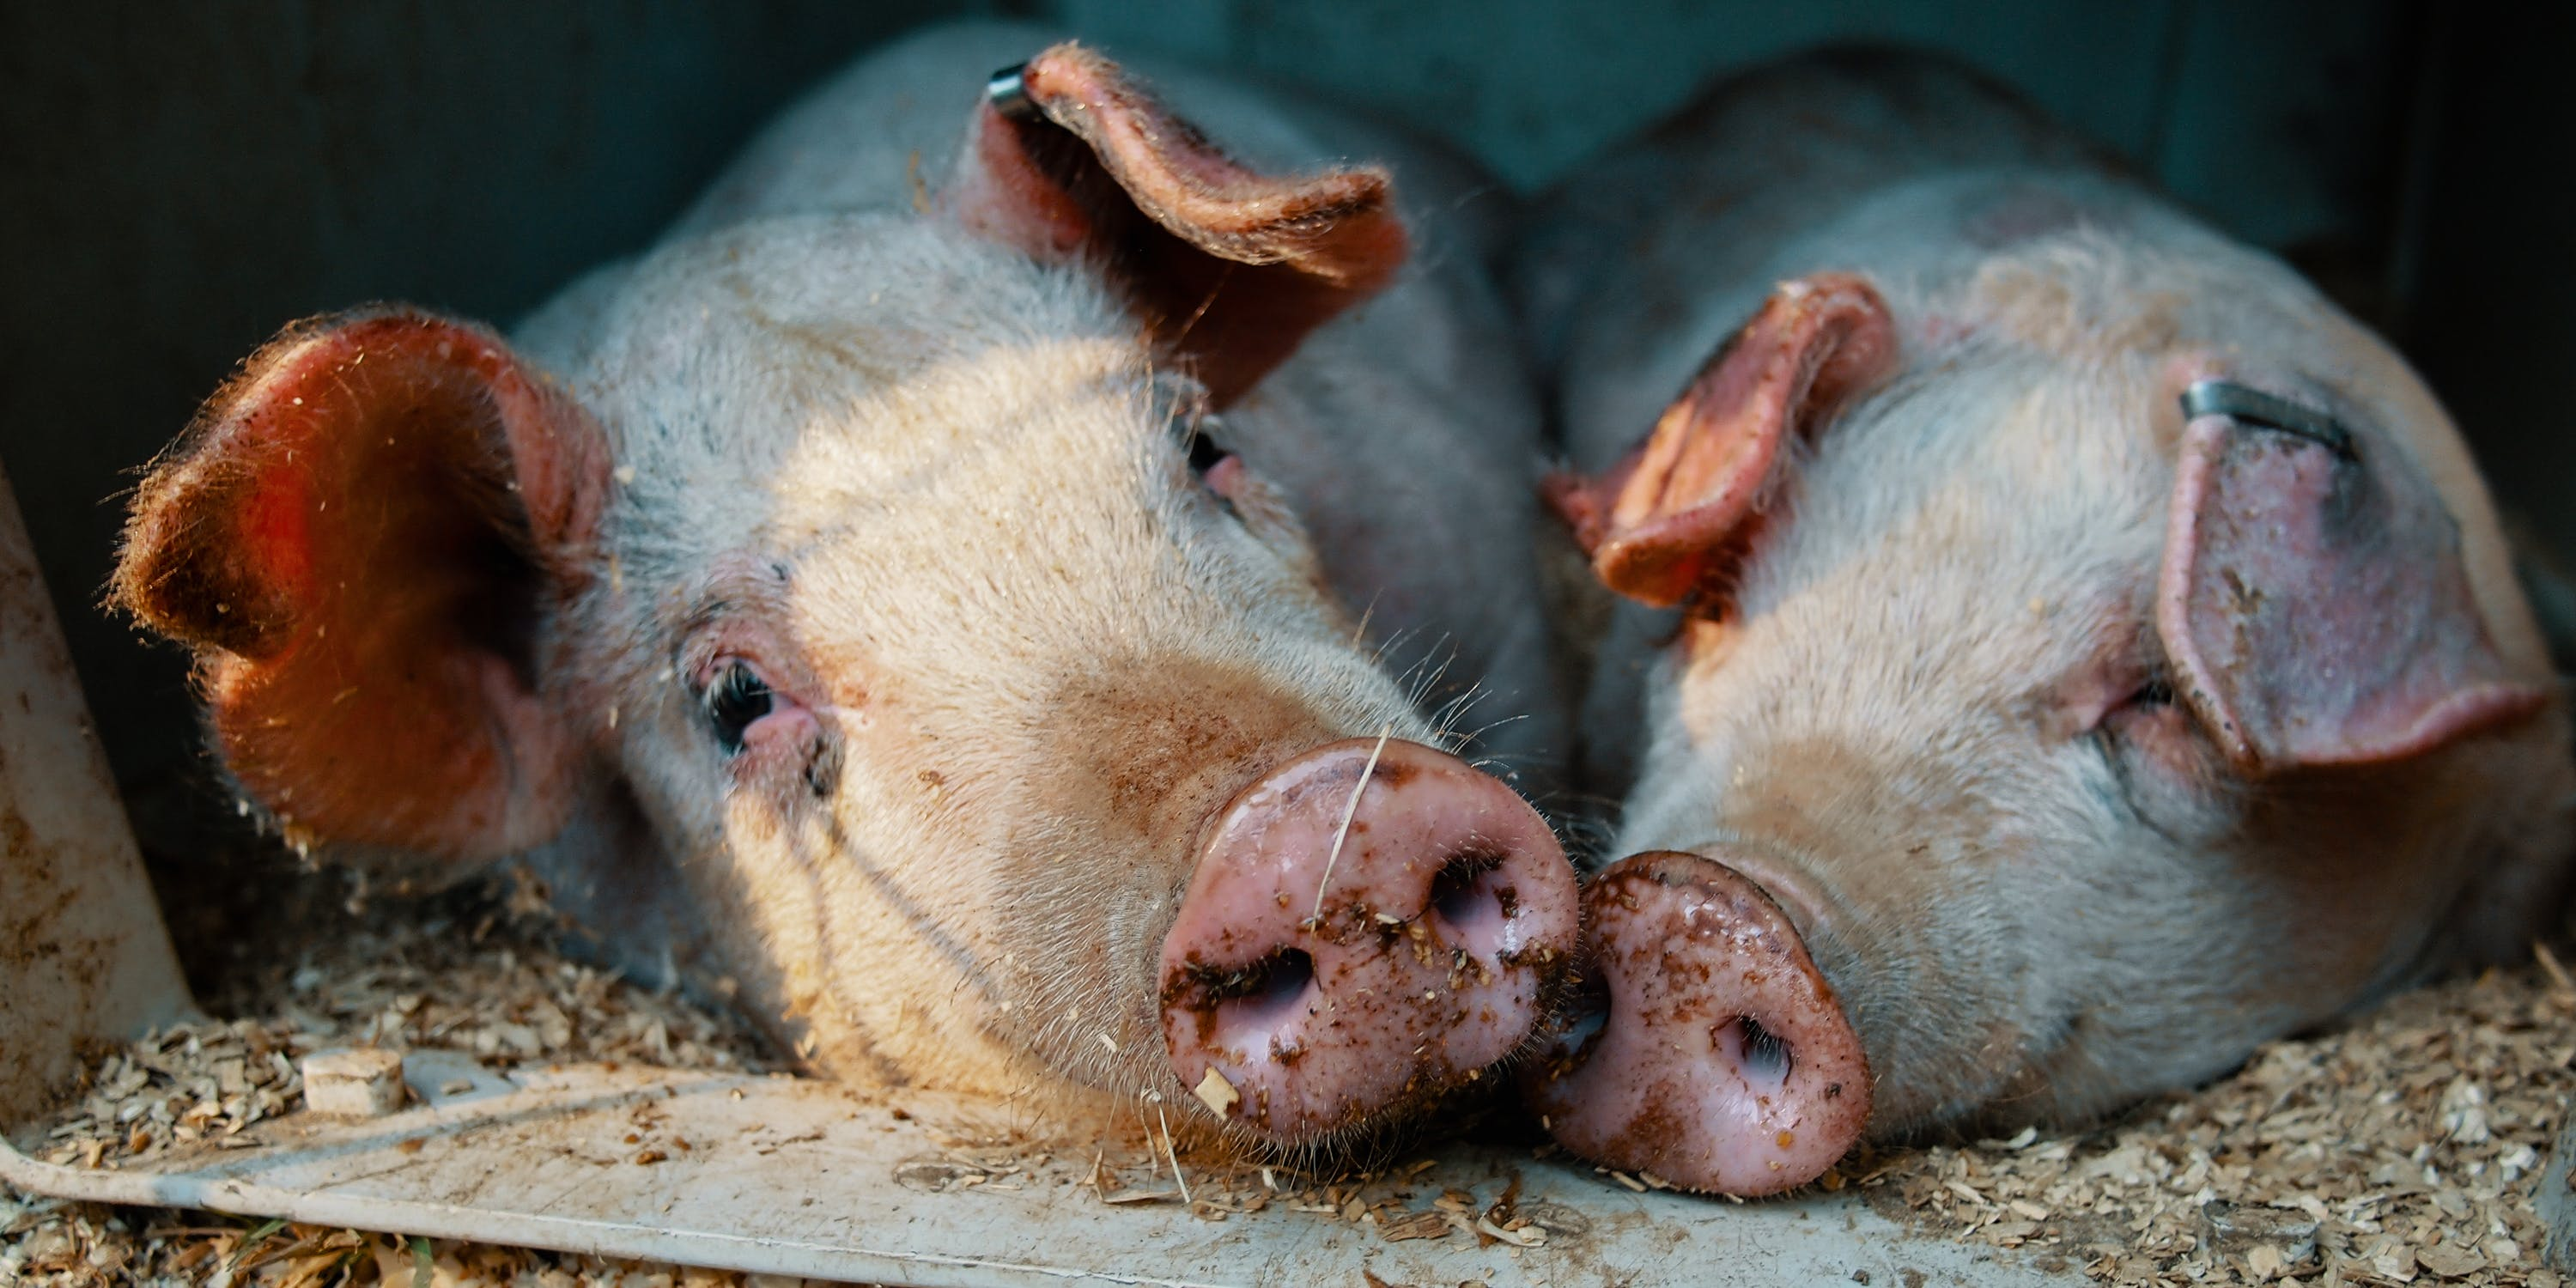 A farm in Oregon is feeding weed to pigs to make tastier pork.